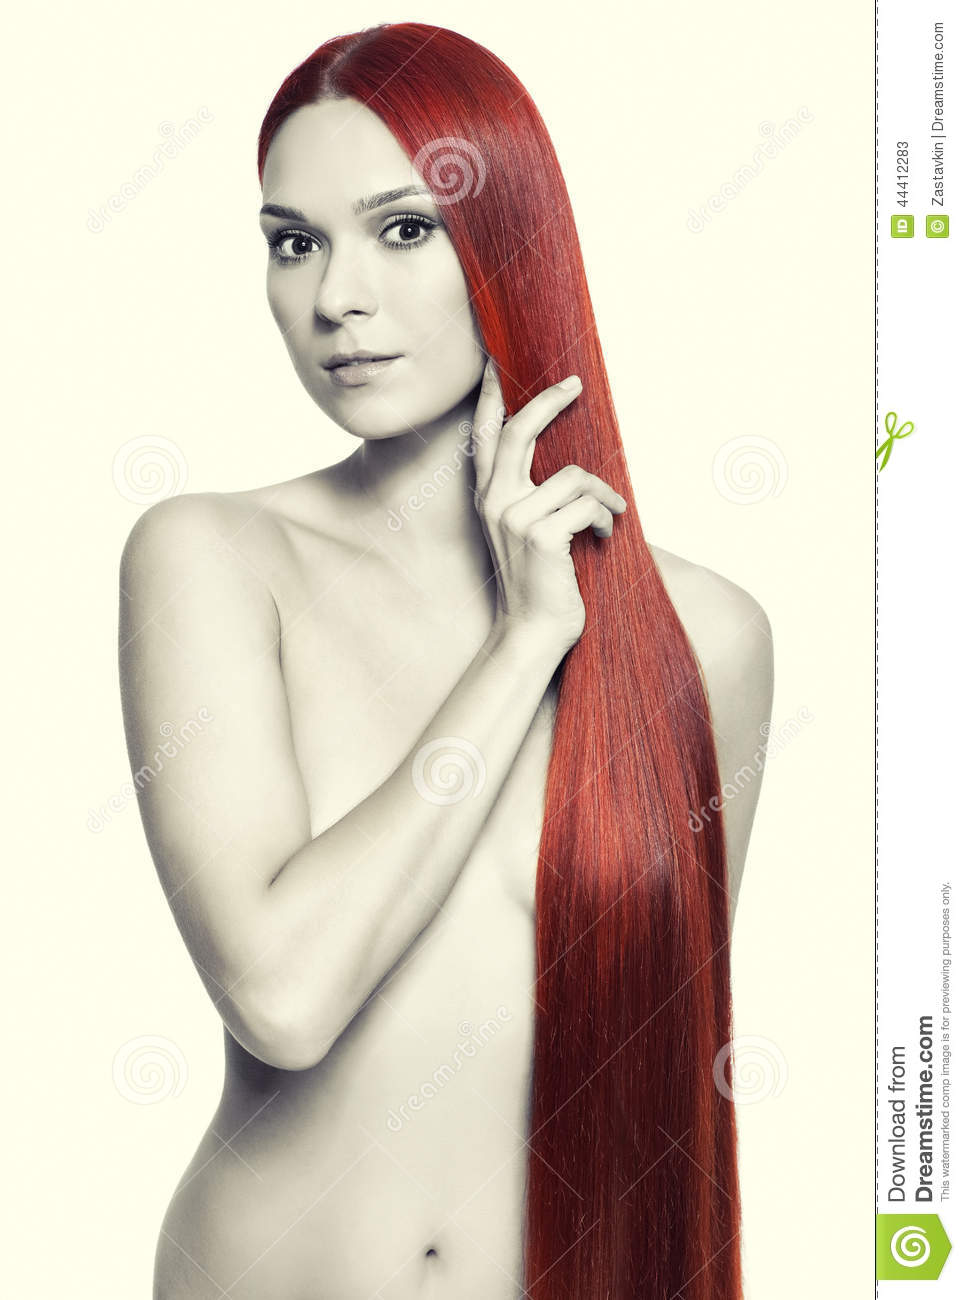 For Natural red hair nude pity